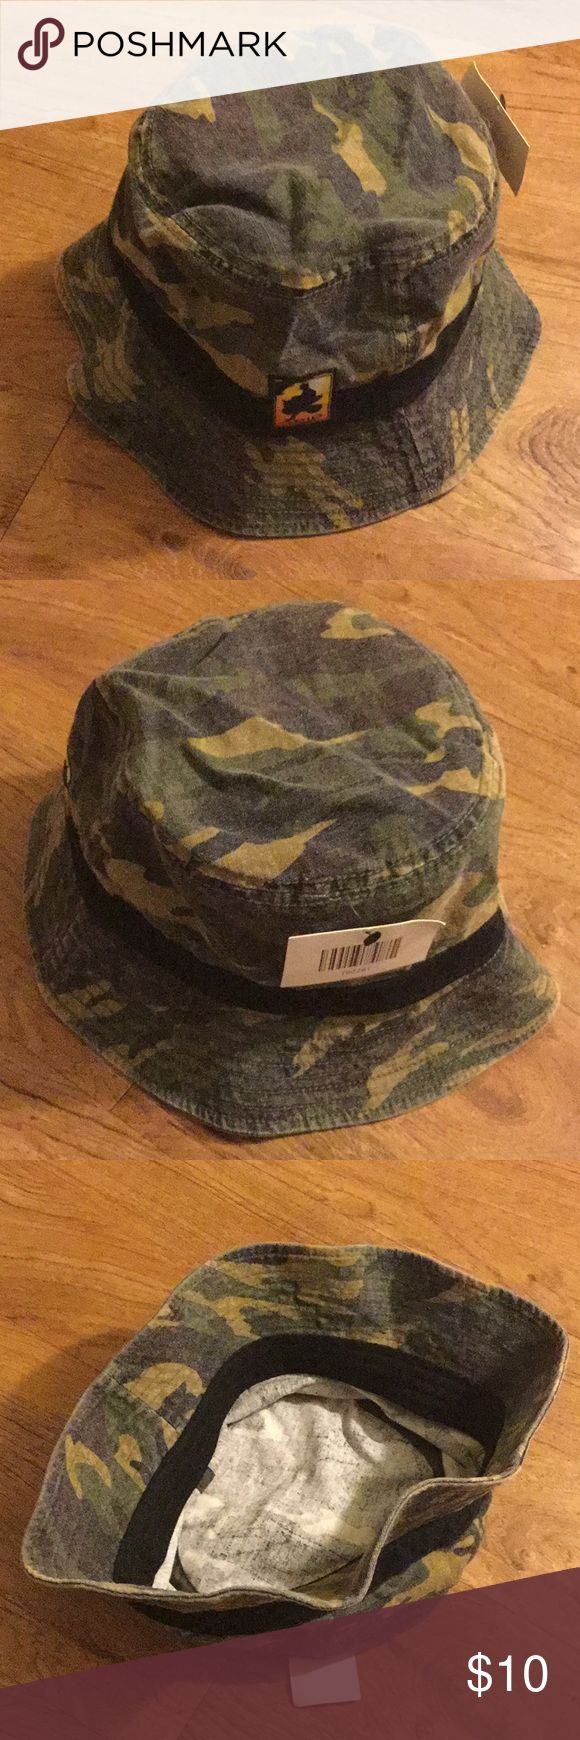 Camo Bucket Hat Brand New Camo Bucket Hat Brand New Accessories Hats